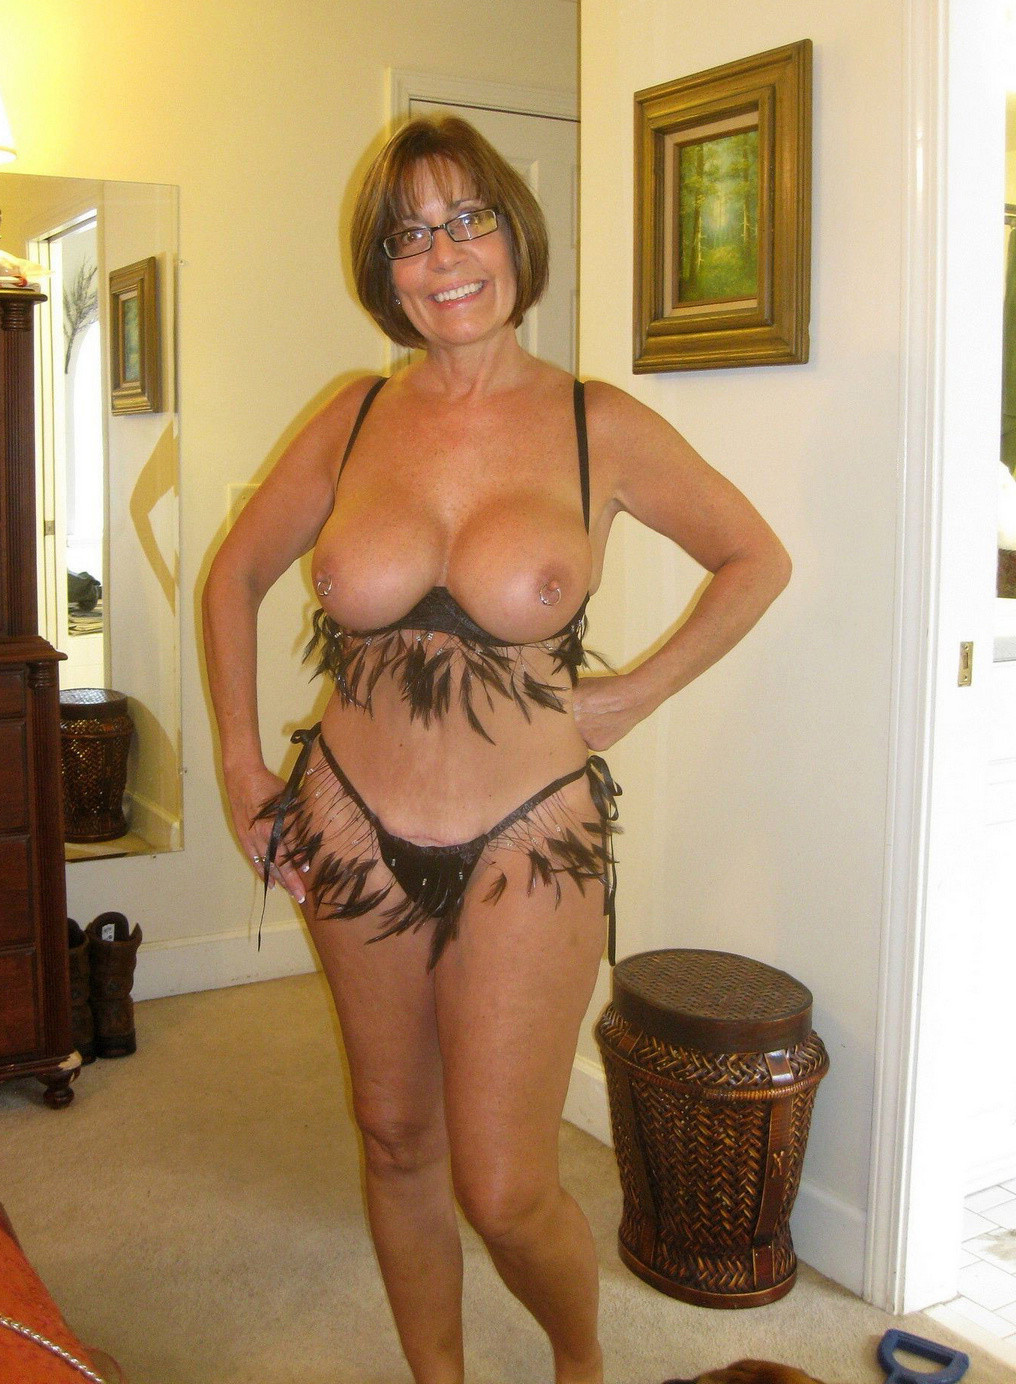 Hot sexy mature women nude